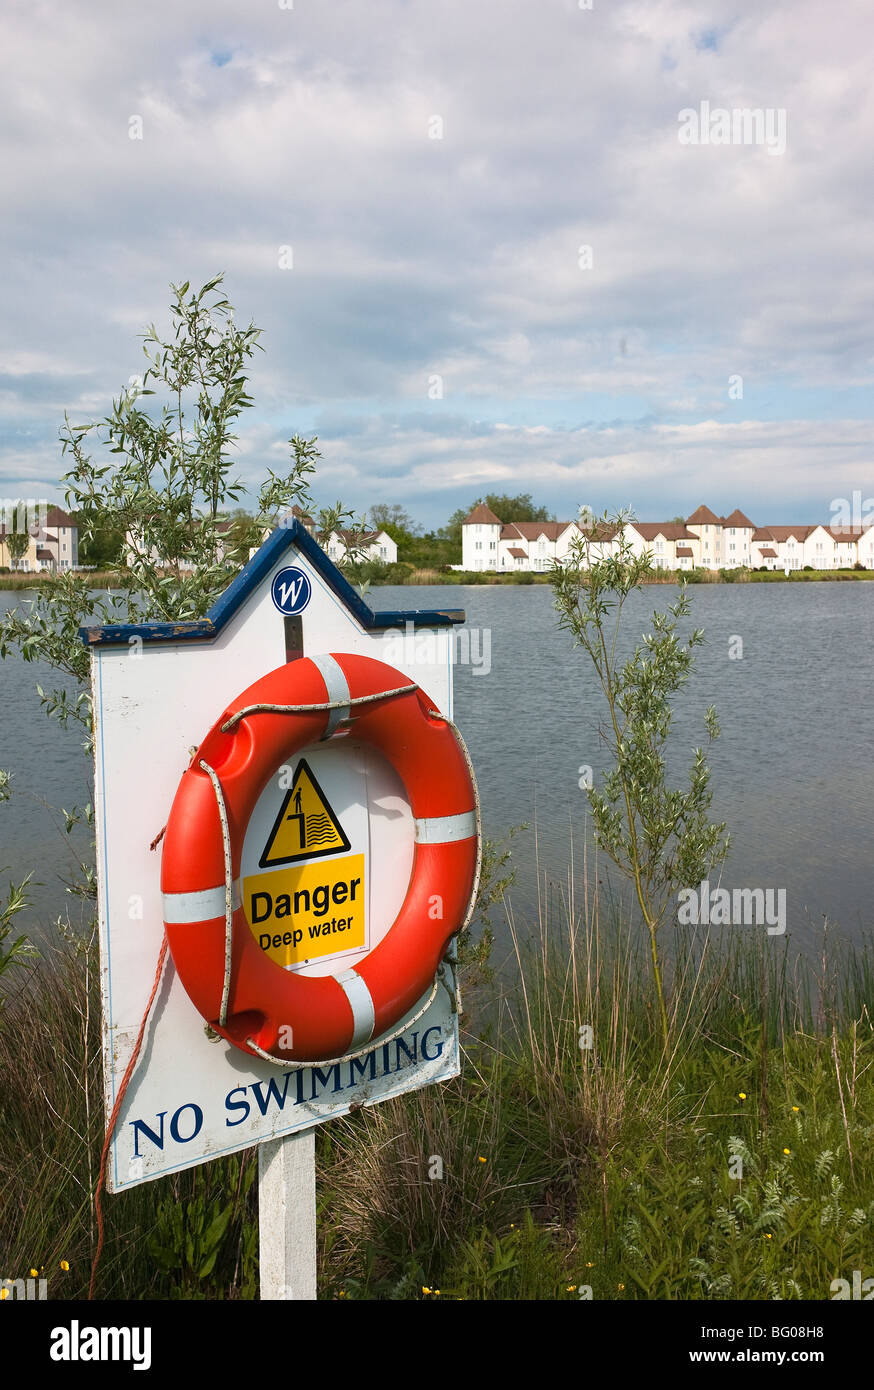 Health and safety warning notice beside water where swimming is not permitted - Stock Image